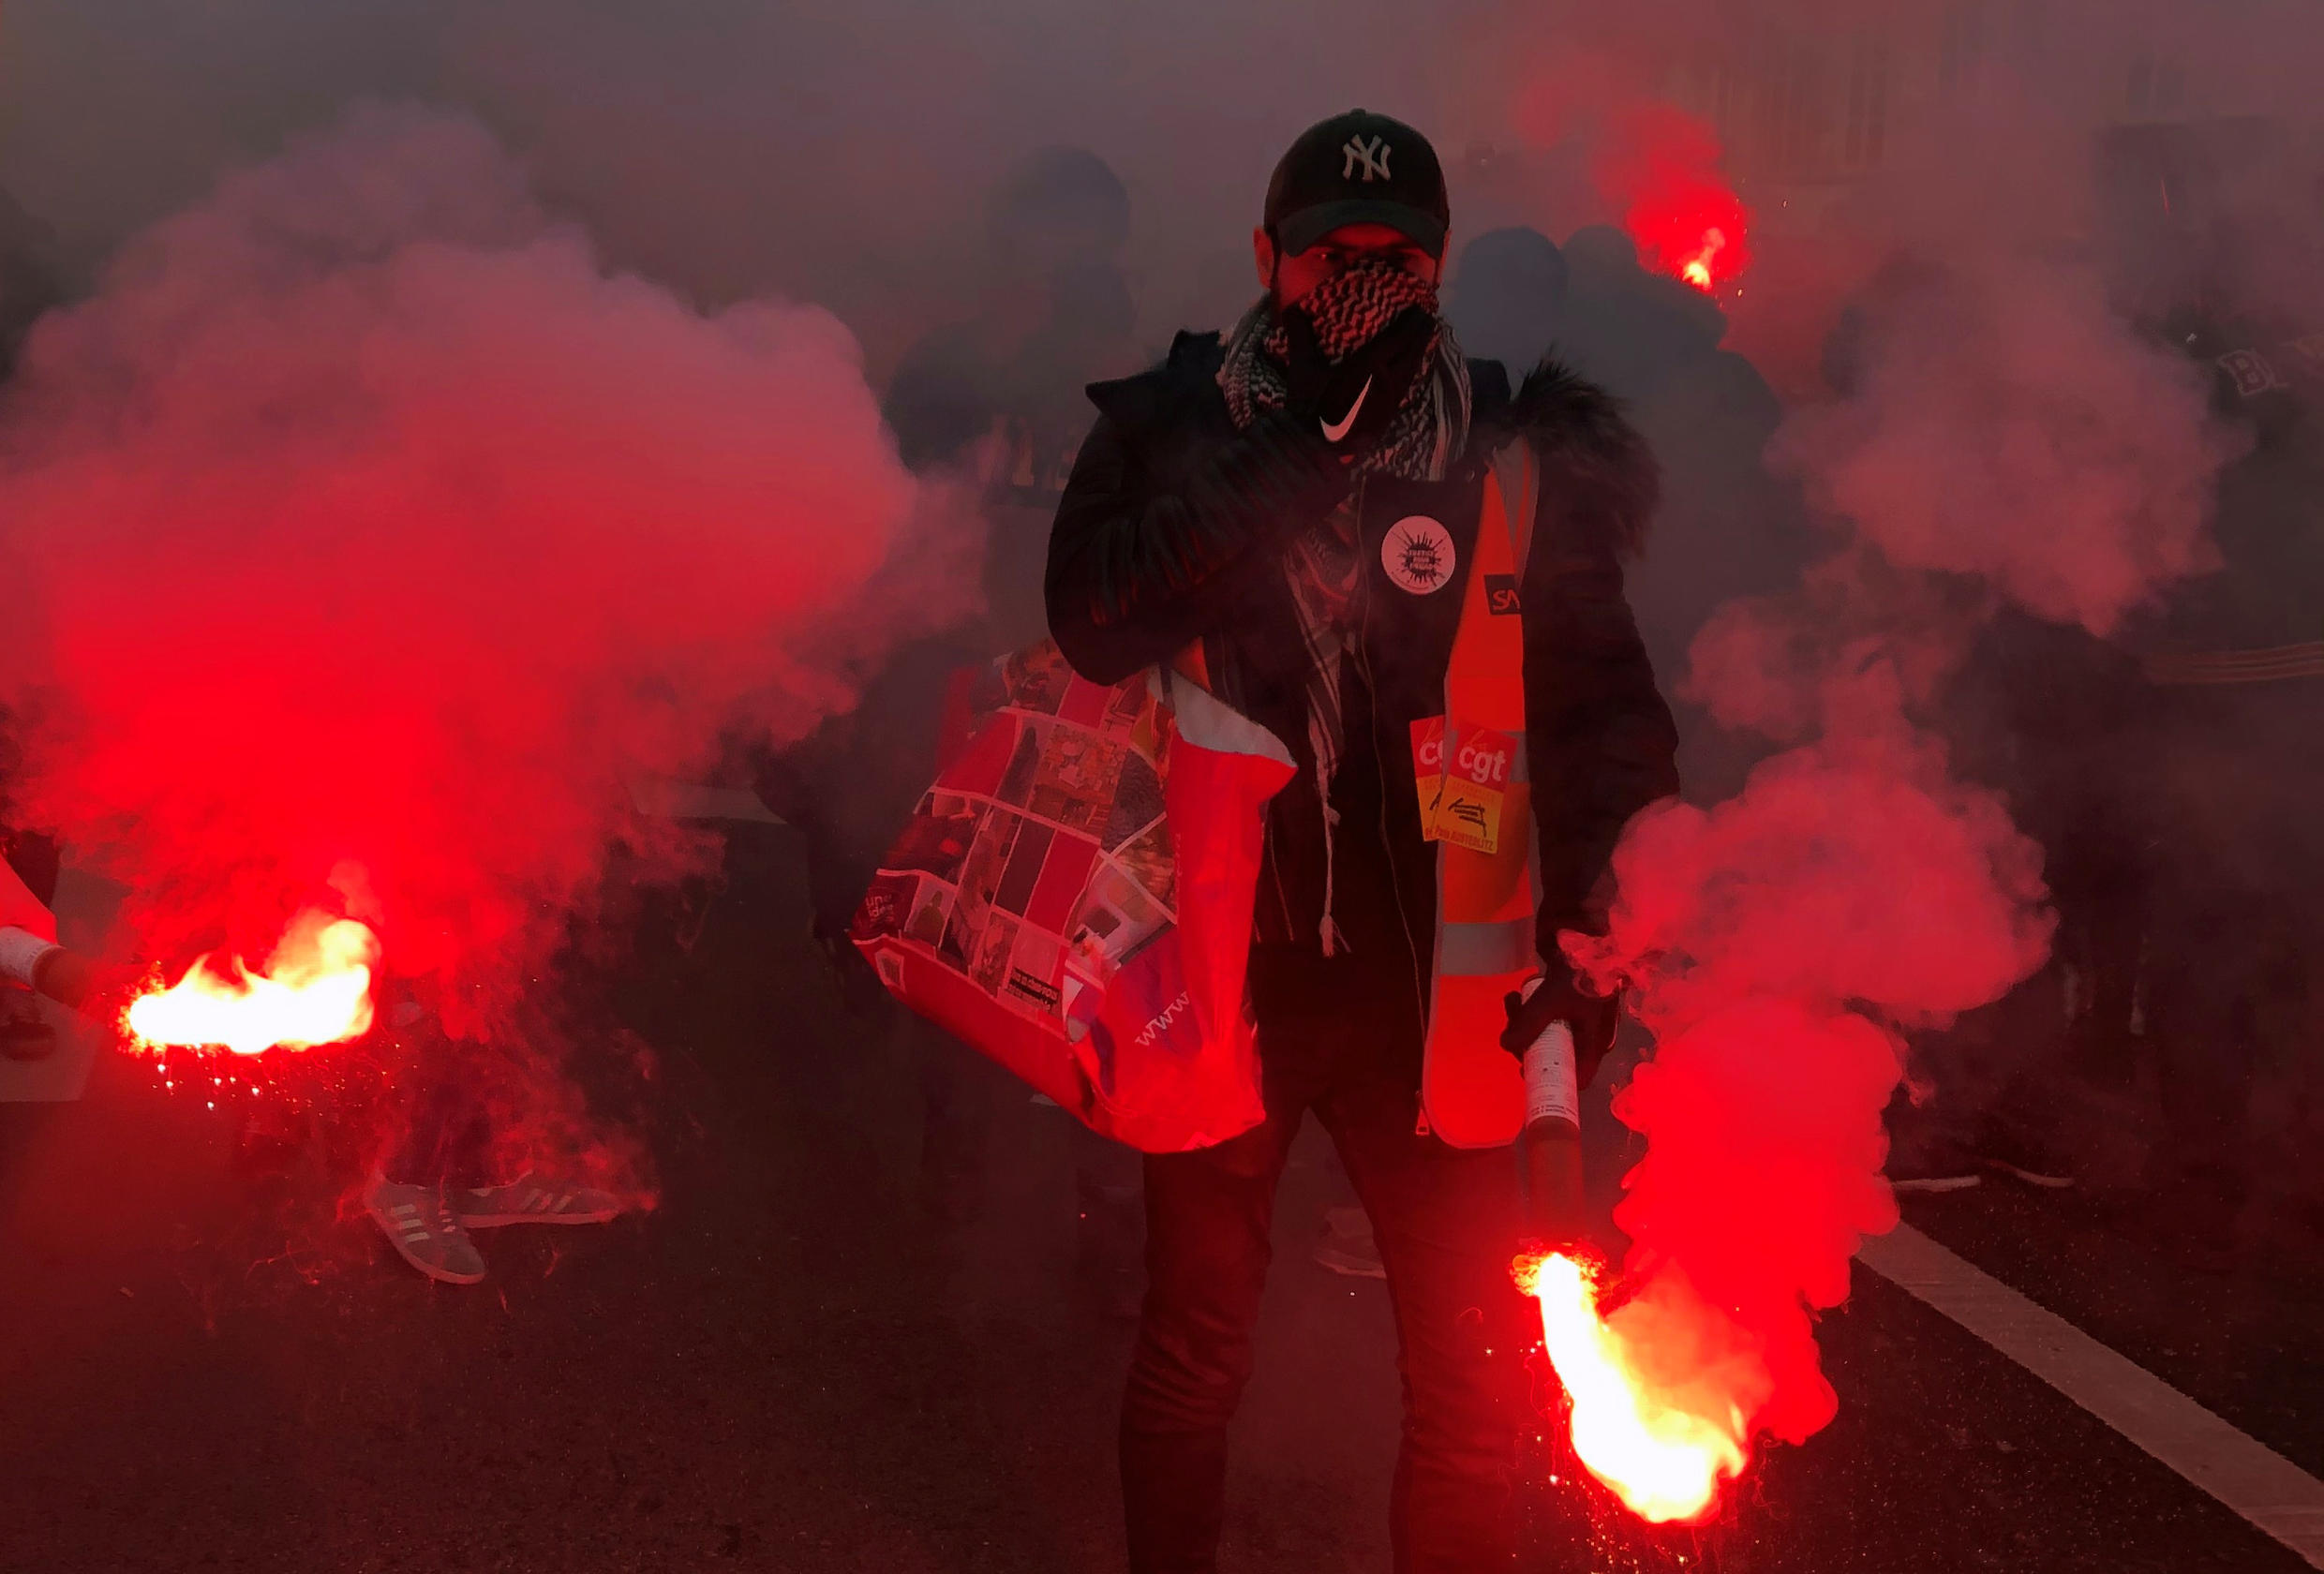 More than 600,000 people took to the streets in France, according to the interior ministry, to protest against the government's proposals for pension reforms.